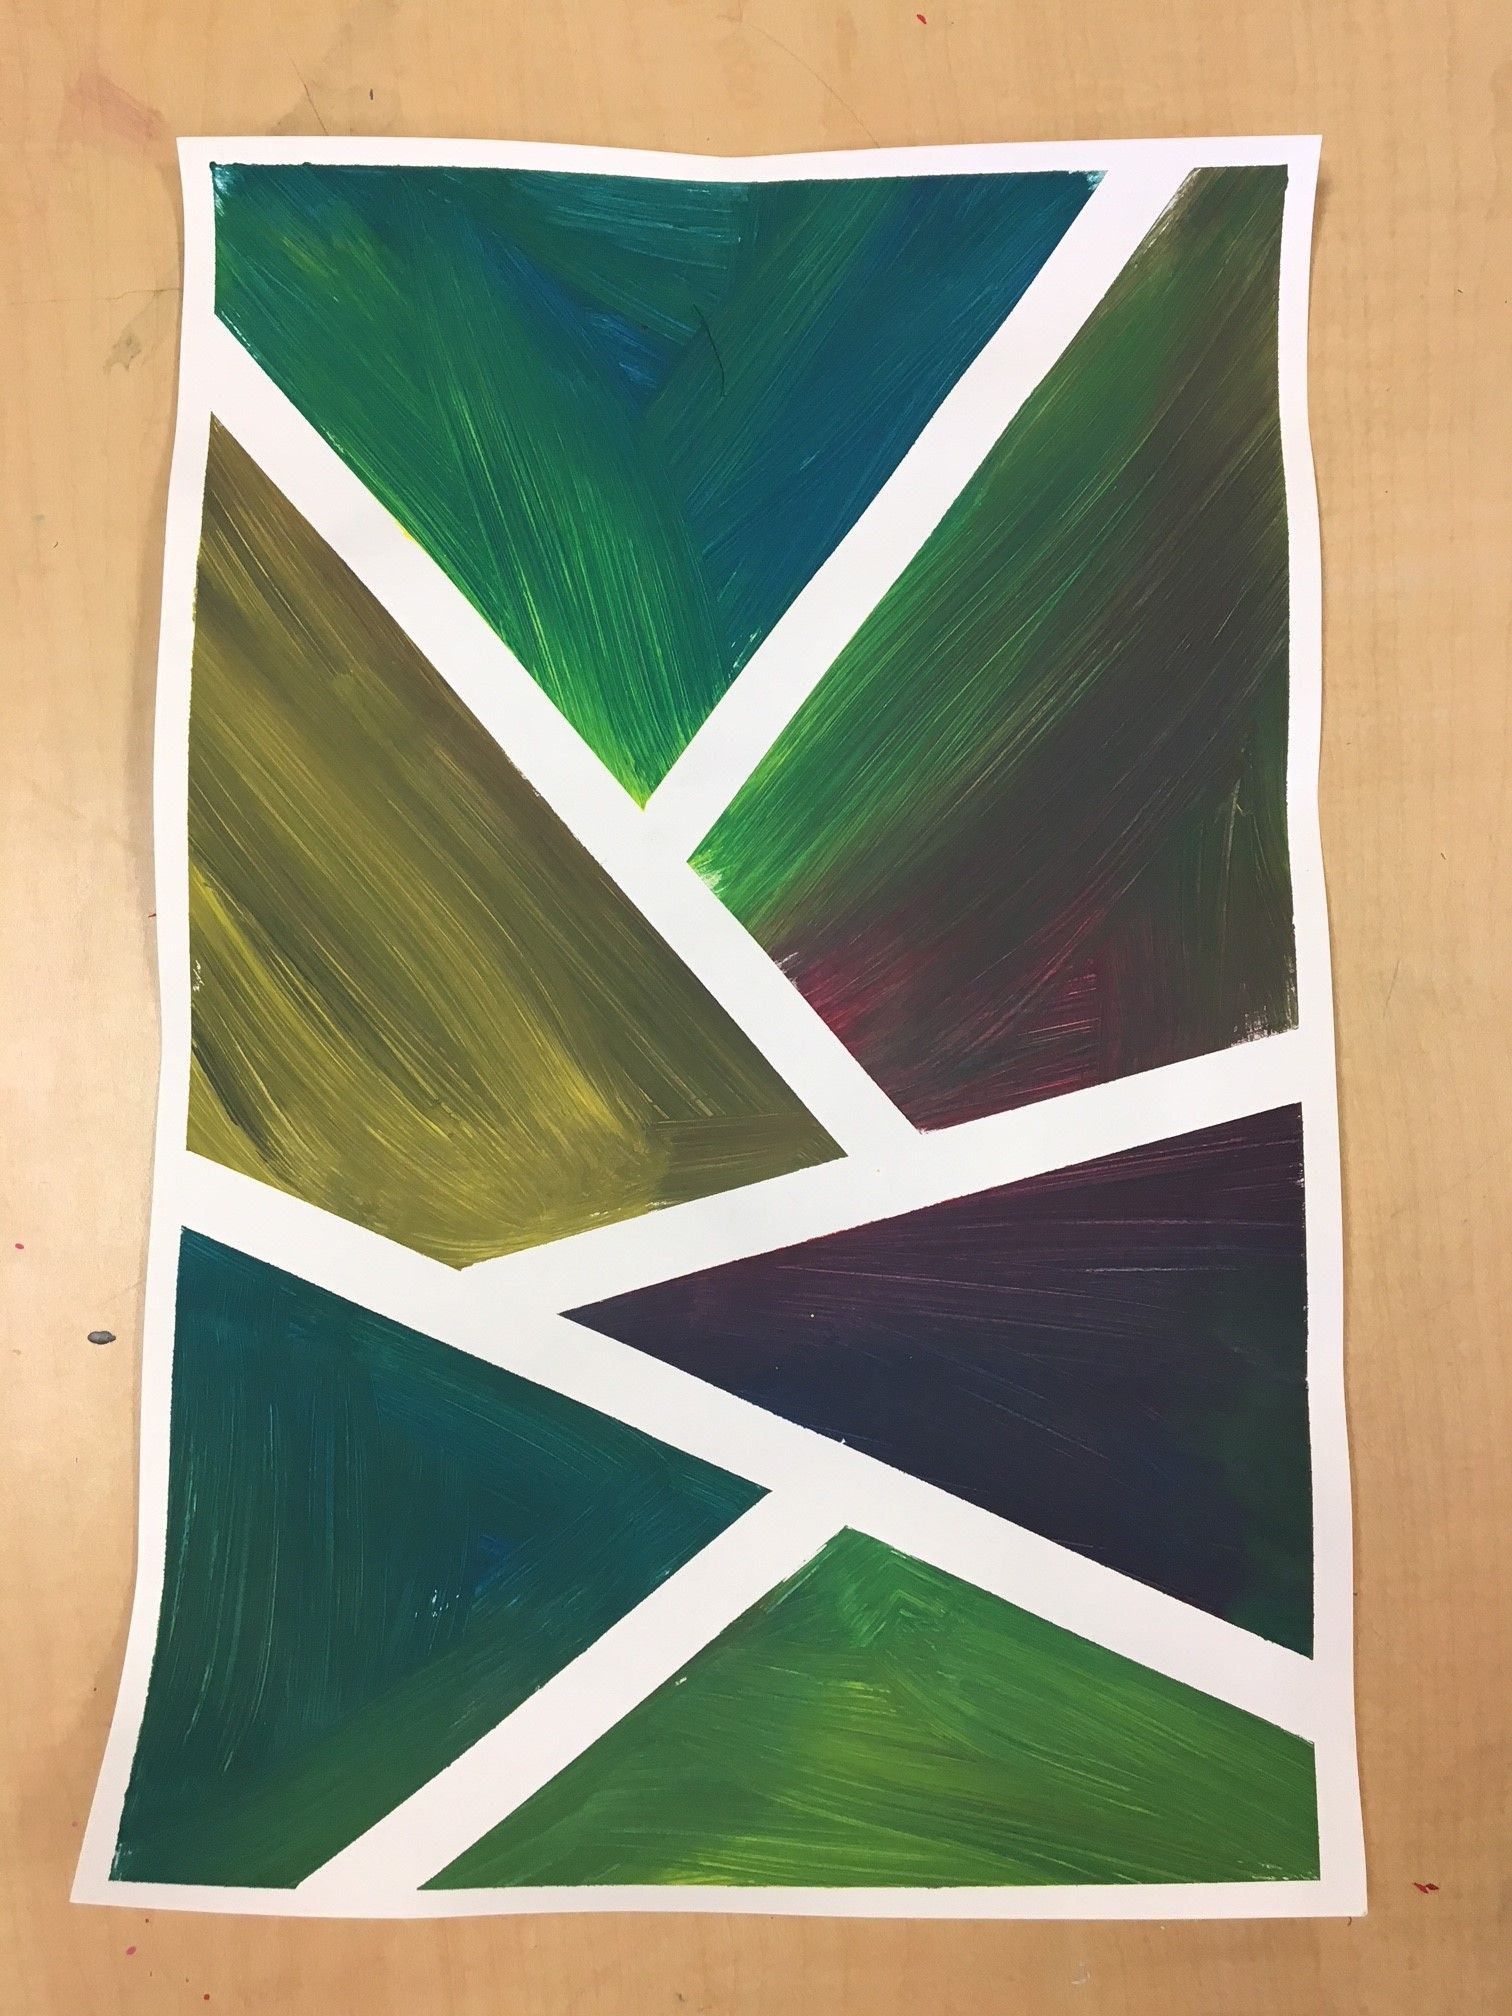 I Bought Some Not Very Sticky Masking Tape So We Used It On This Project The Students Put The Tape Down Painted And Pulle Masking Tape Art Lessons Abstract